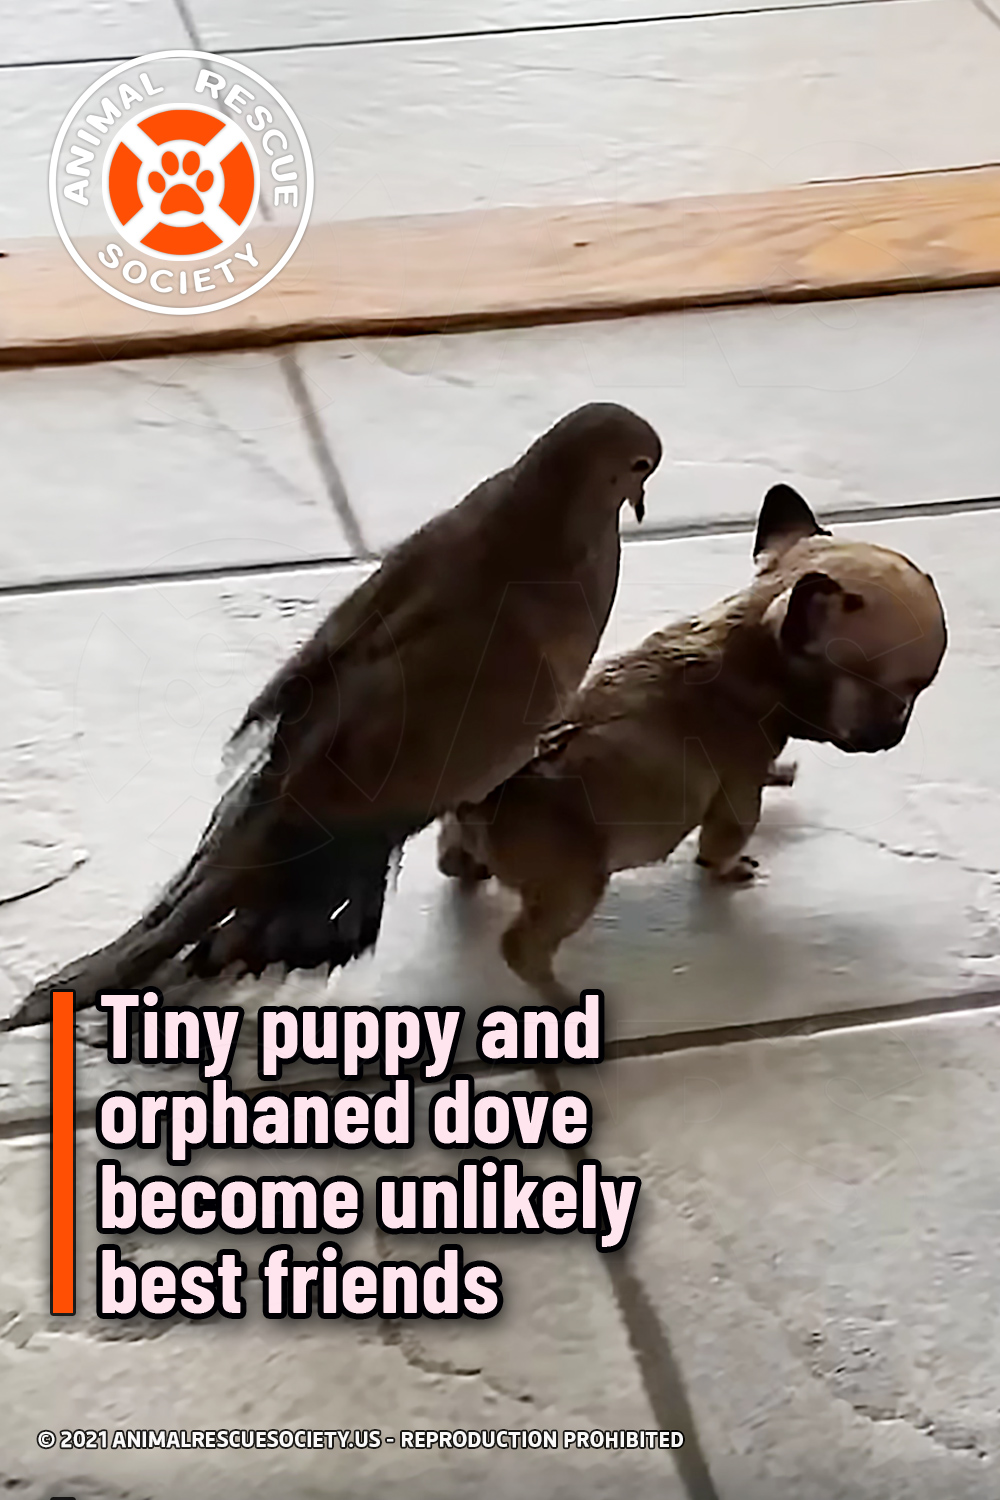 Tiny puppy and orphaned dove become unlikely best friends